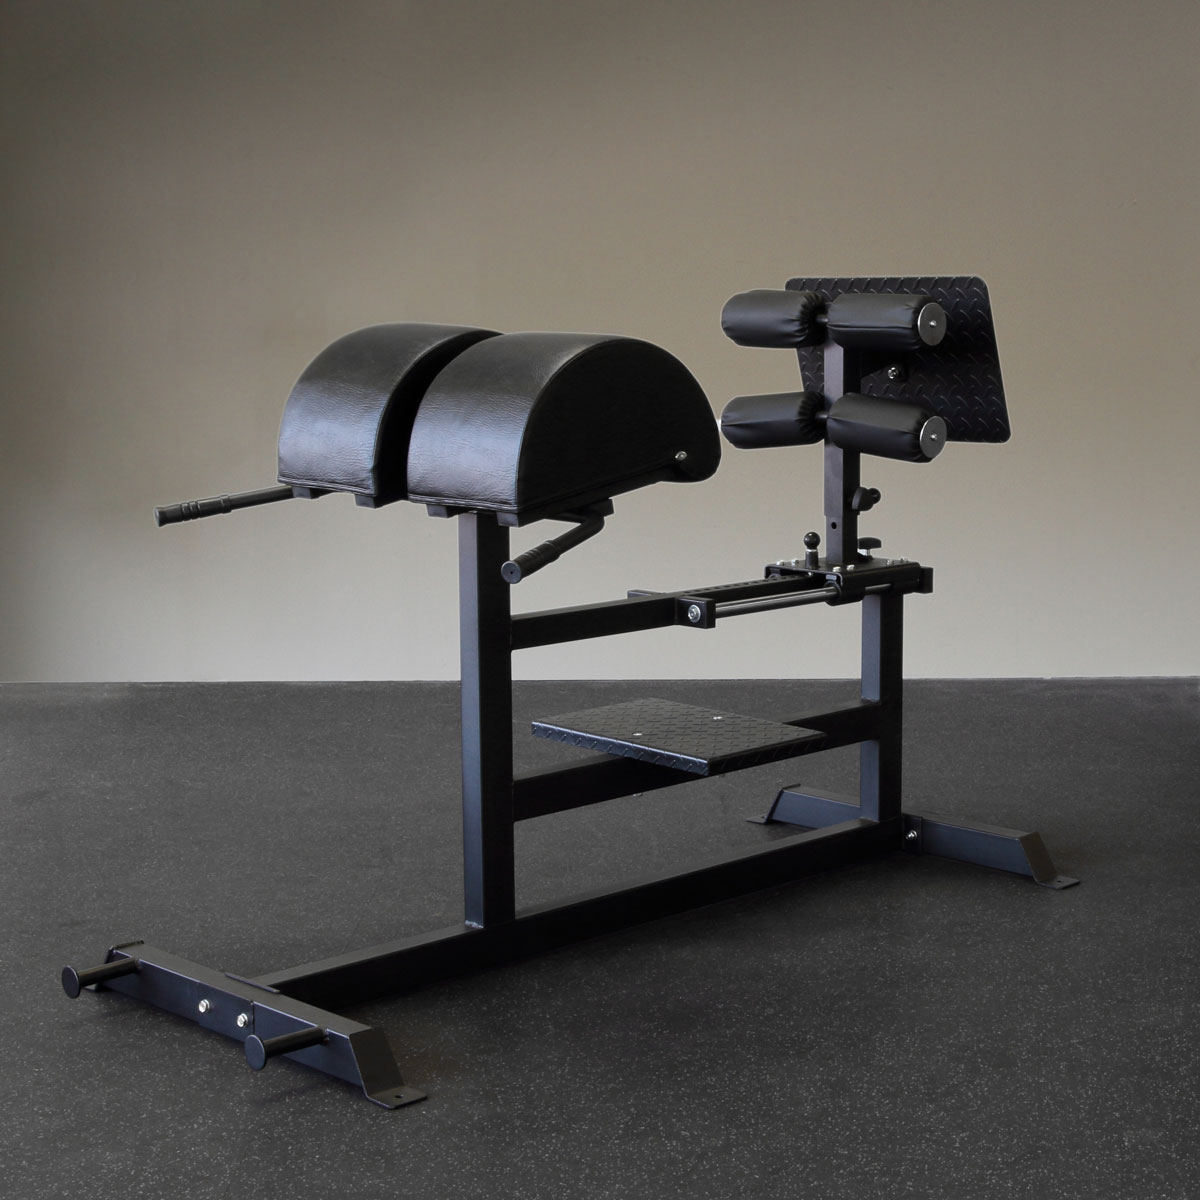 Pro Bearing Glute Hamstring Station GHD - Sold Out